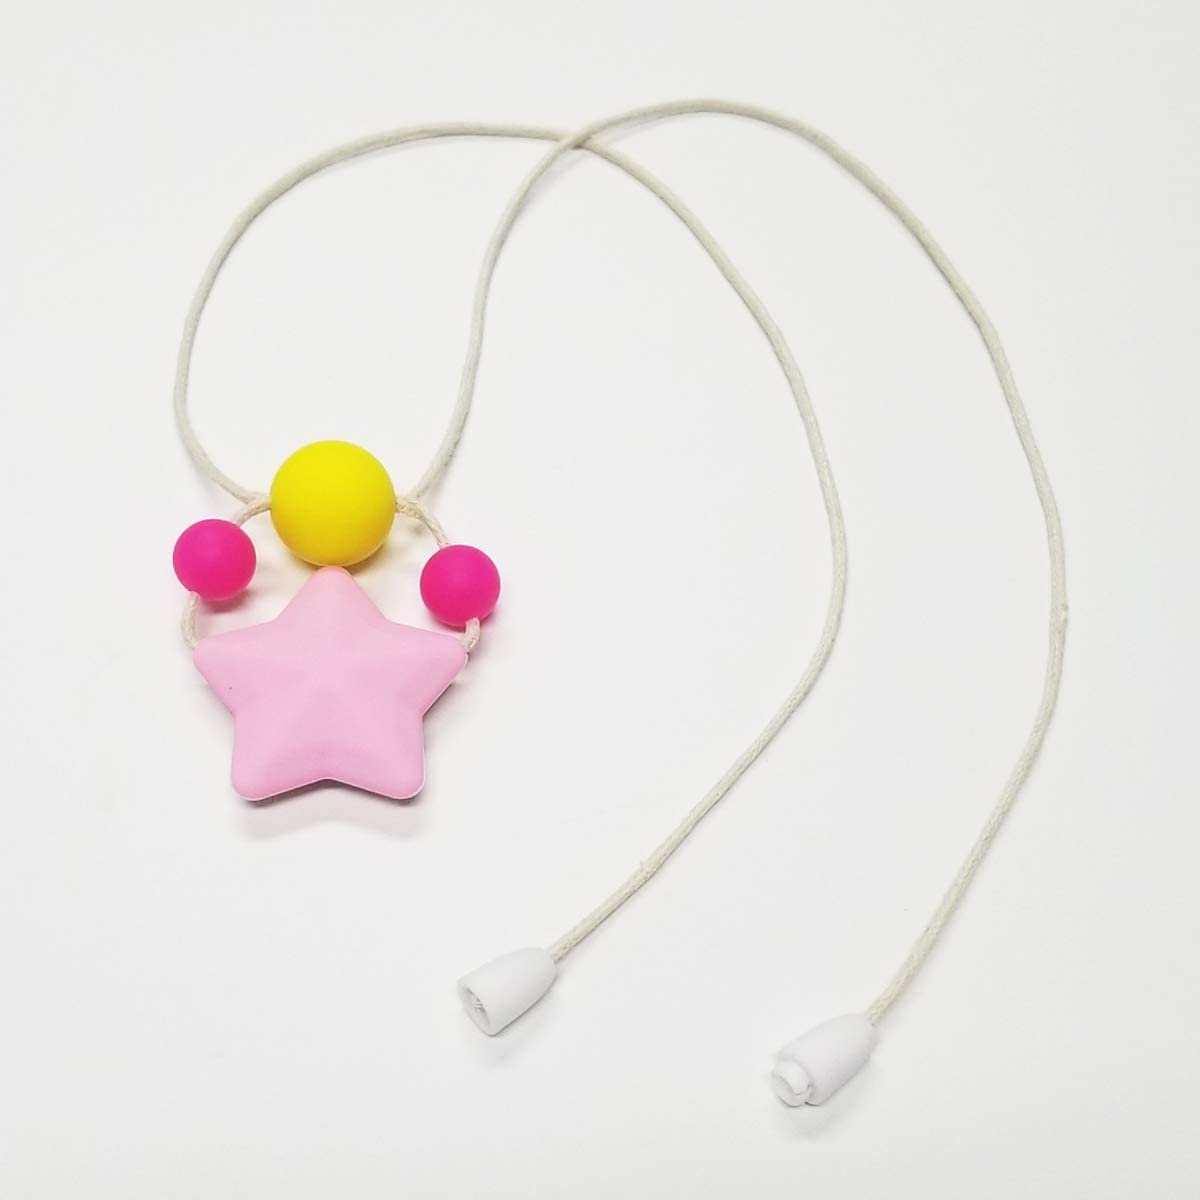 ADHD BPA Free /& Durable Oral Motor Girls Girls Designed for Autism Oral Sensory Chew Toys Teether Necklace Chewing Necklace Teething Necklace for Children Sensory Chew Necklace for Kids